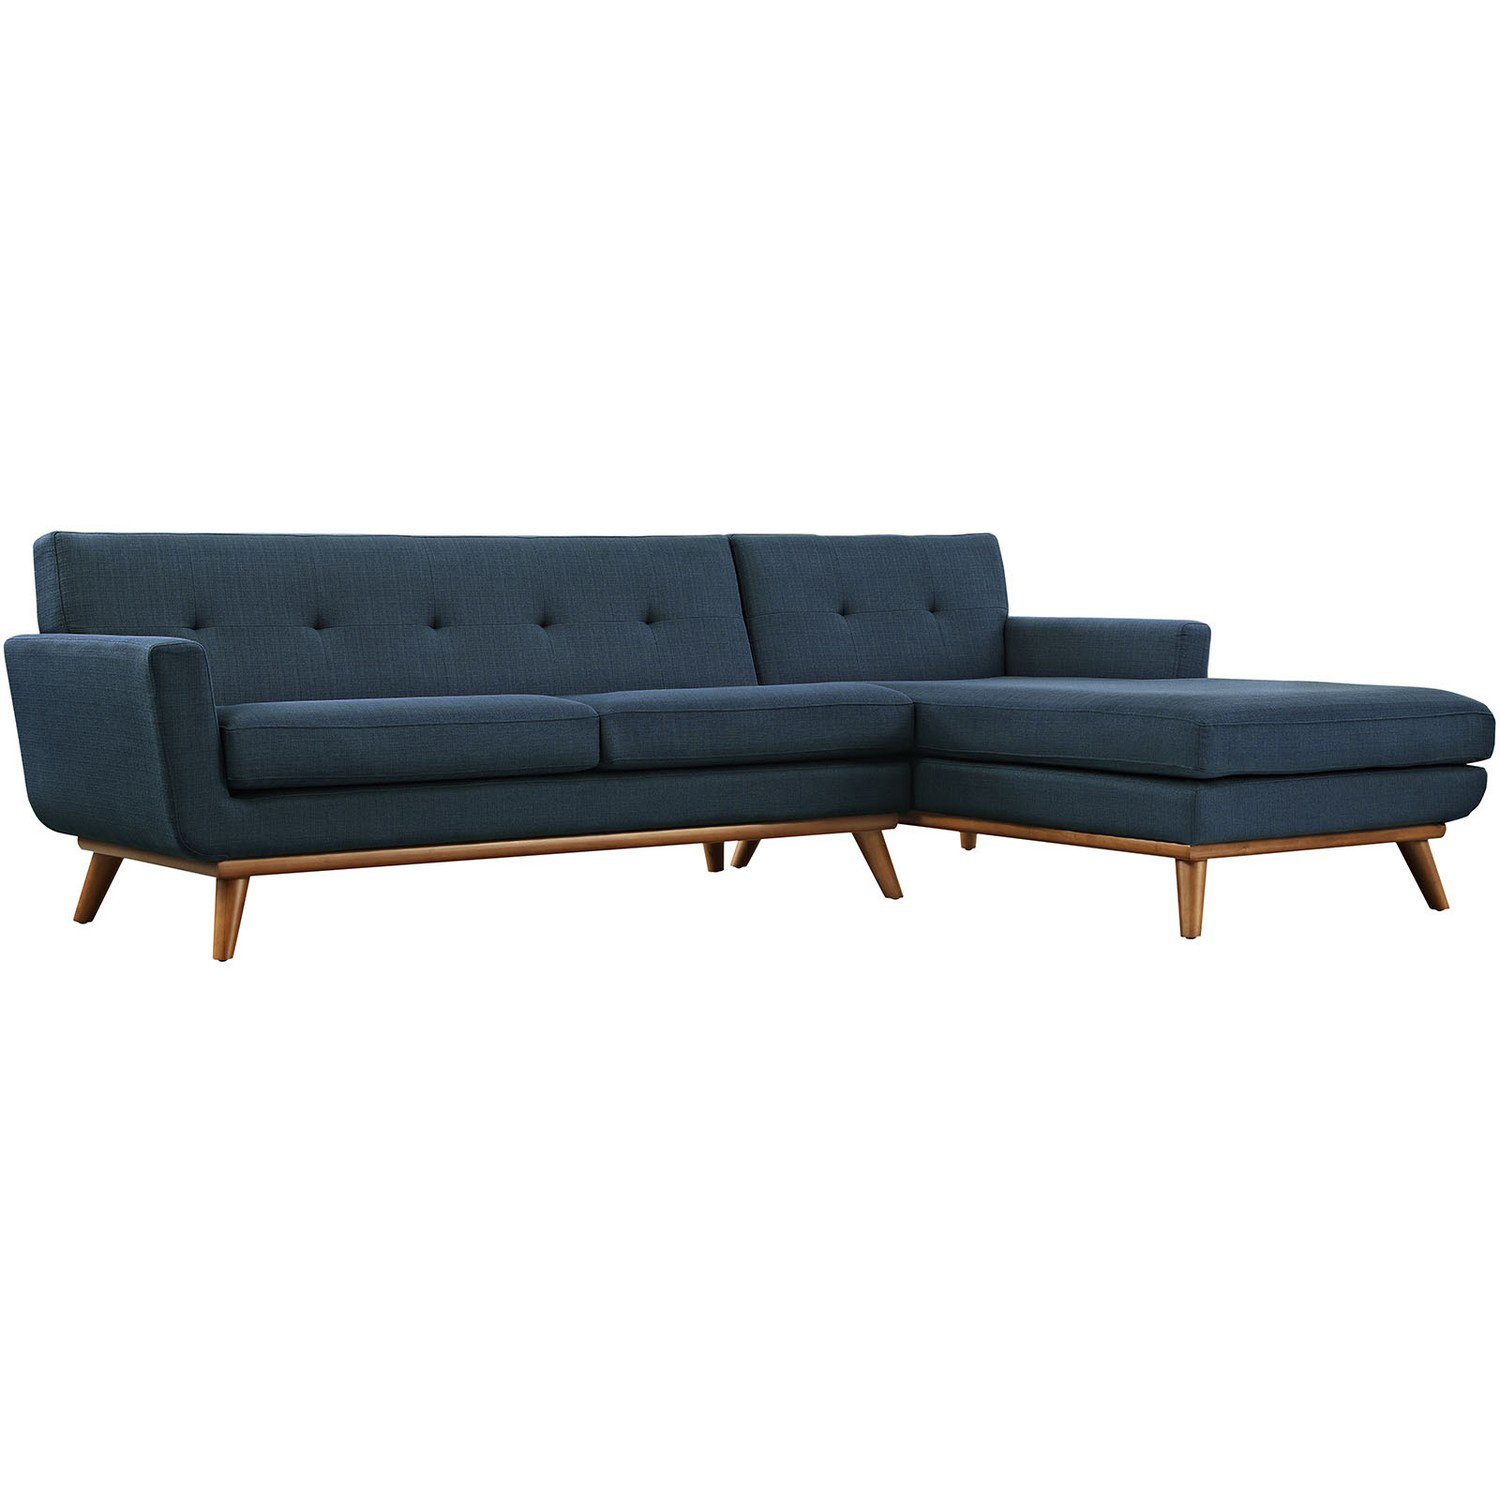 Modway Engage Right-Facing Sectional Sofa - Azure